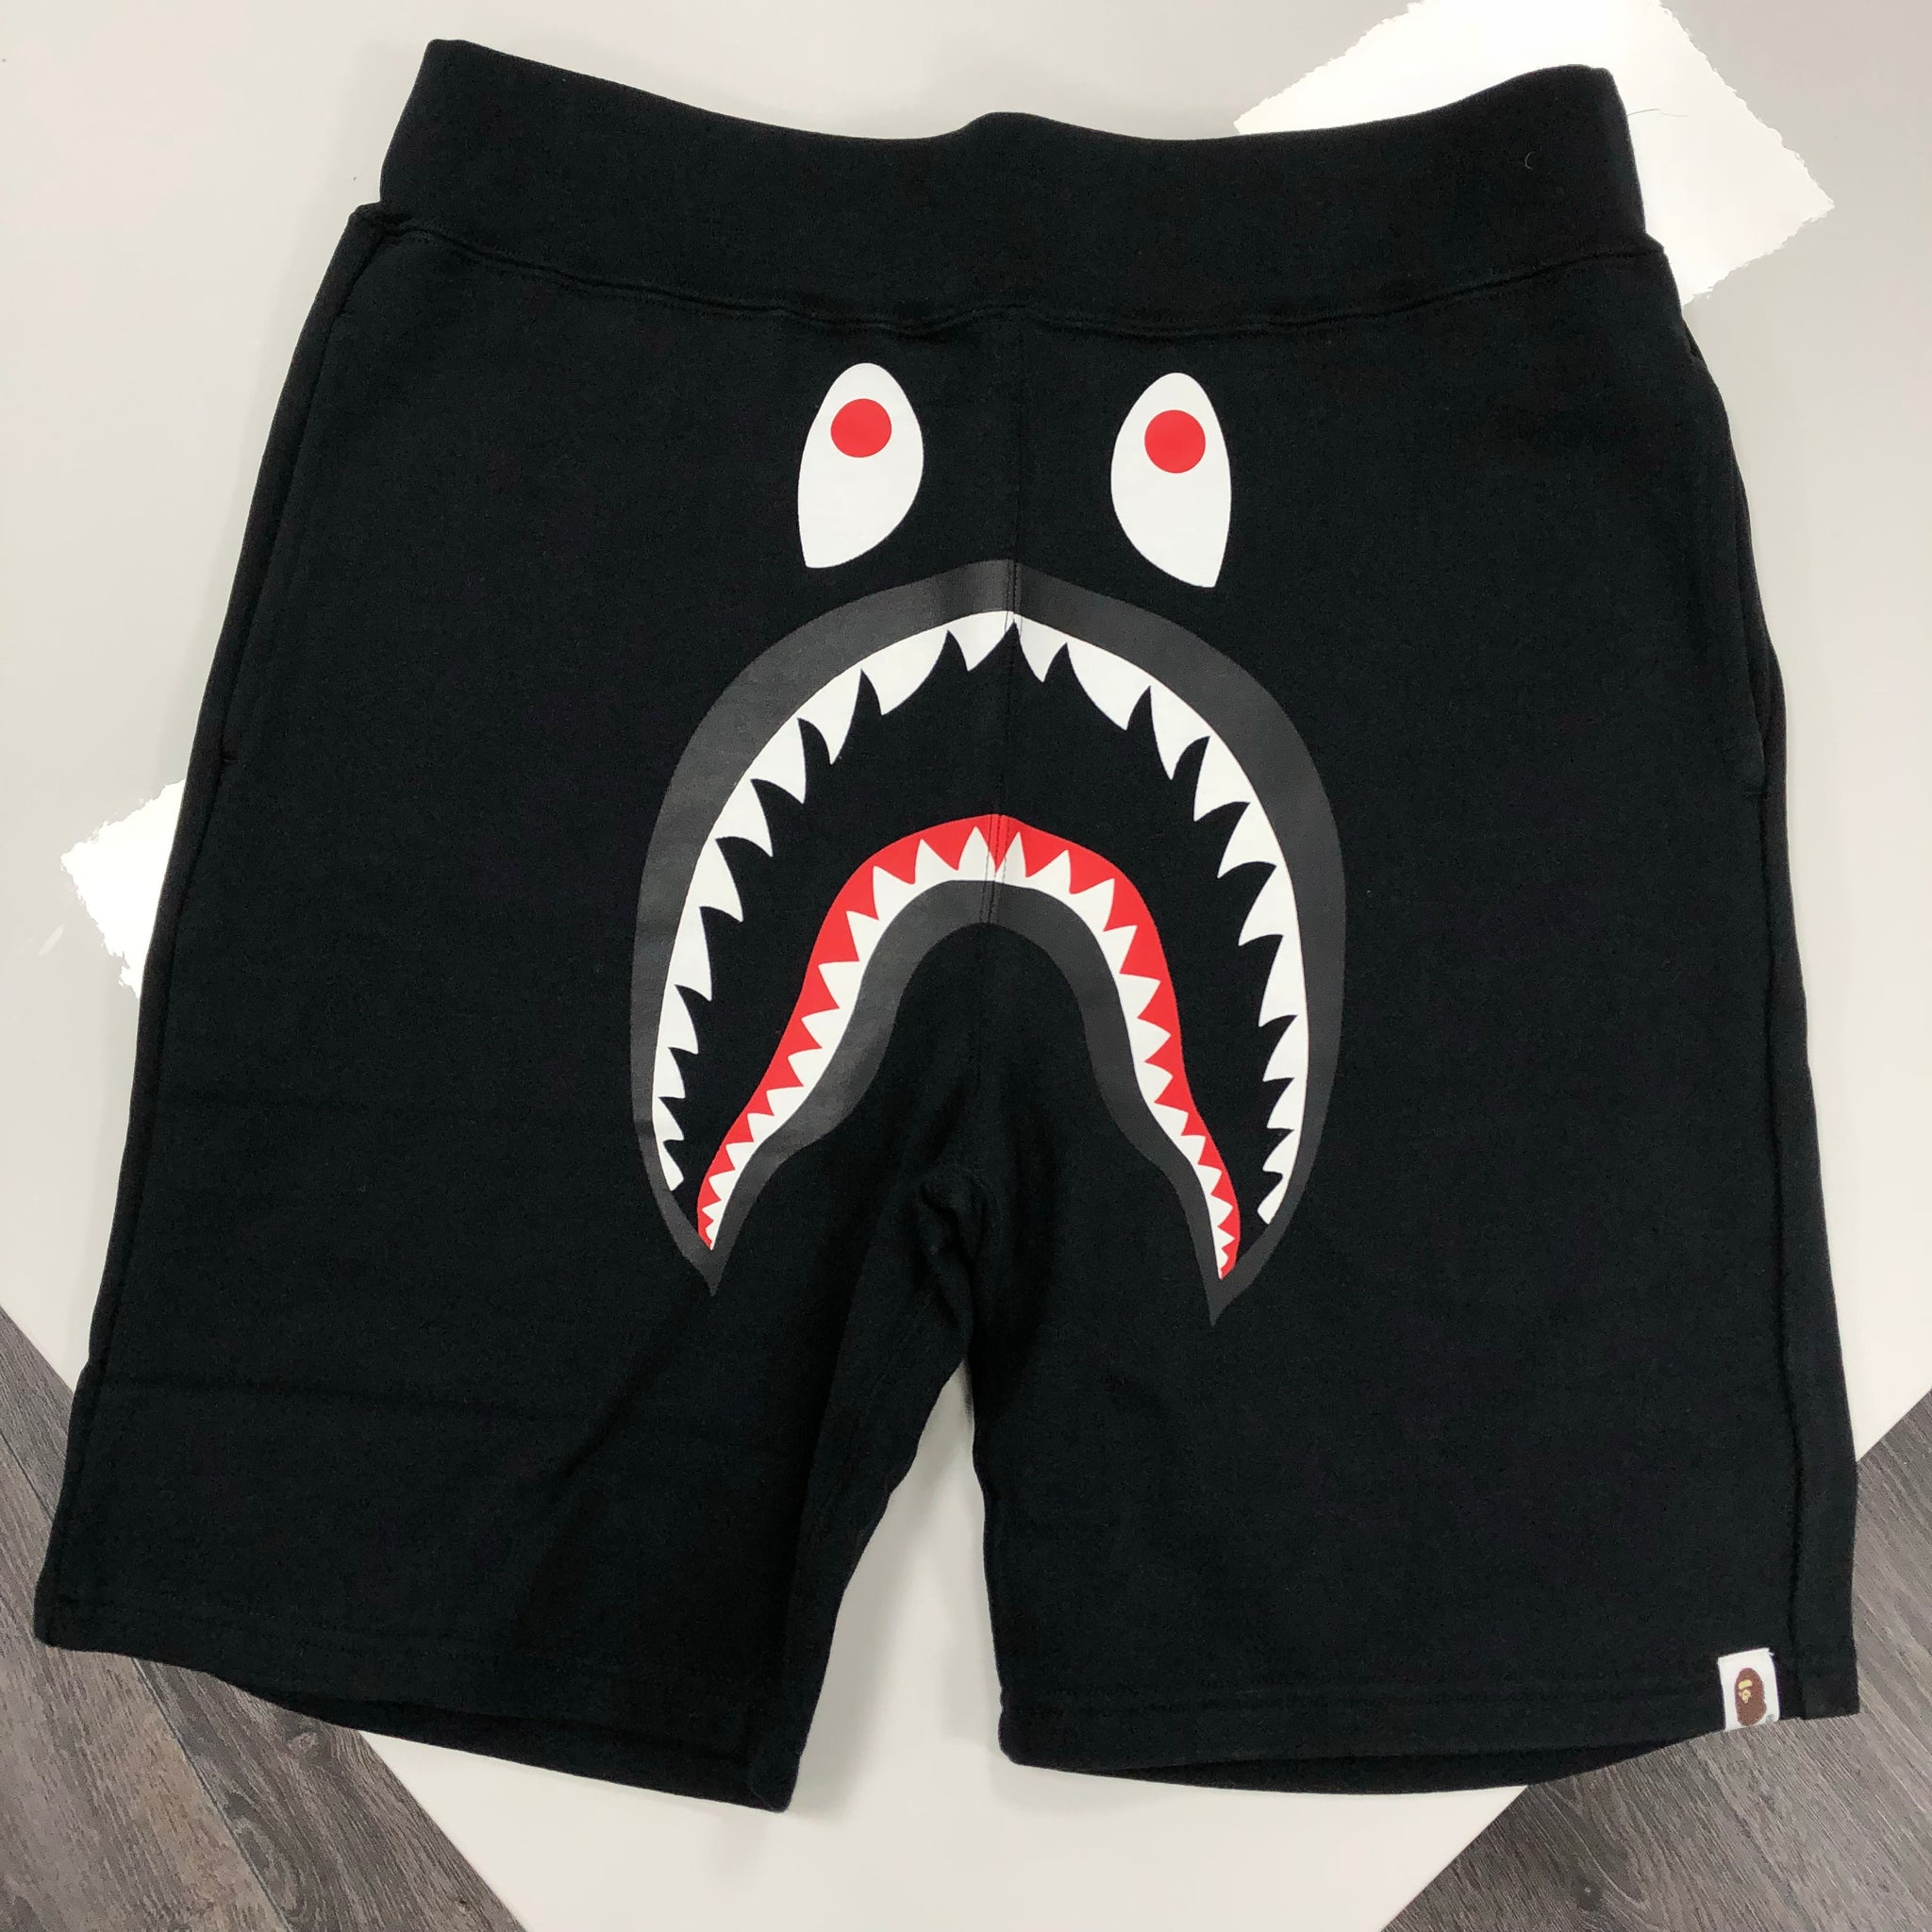 BAPE SHARK SHORTS BLACK MENS